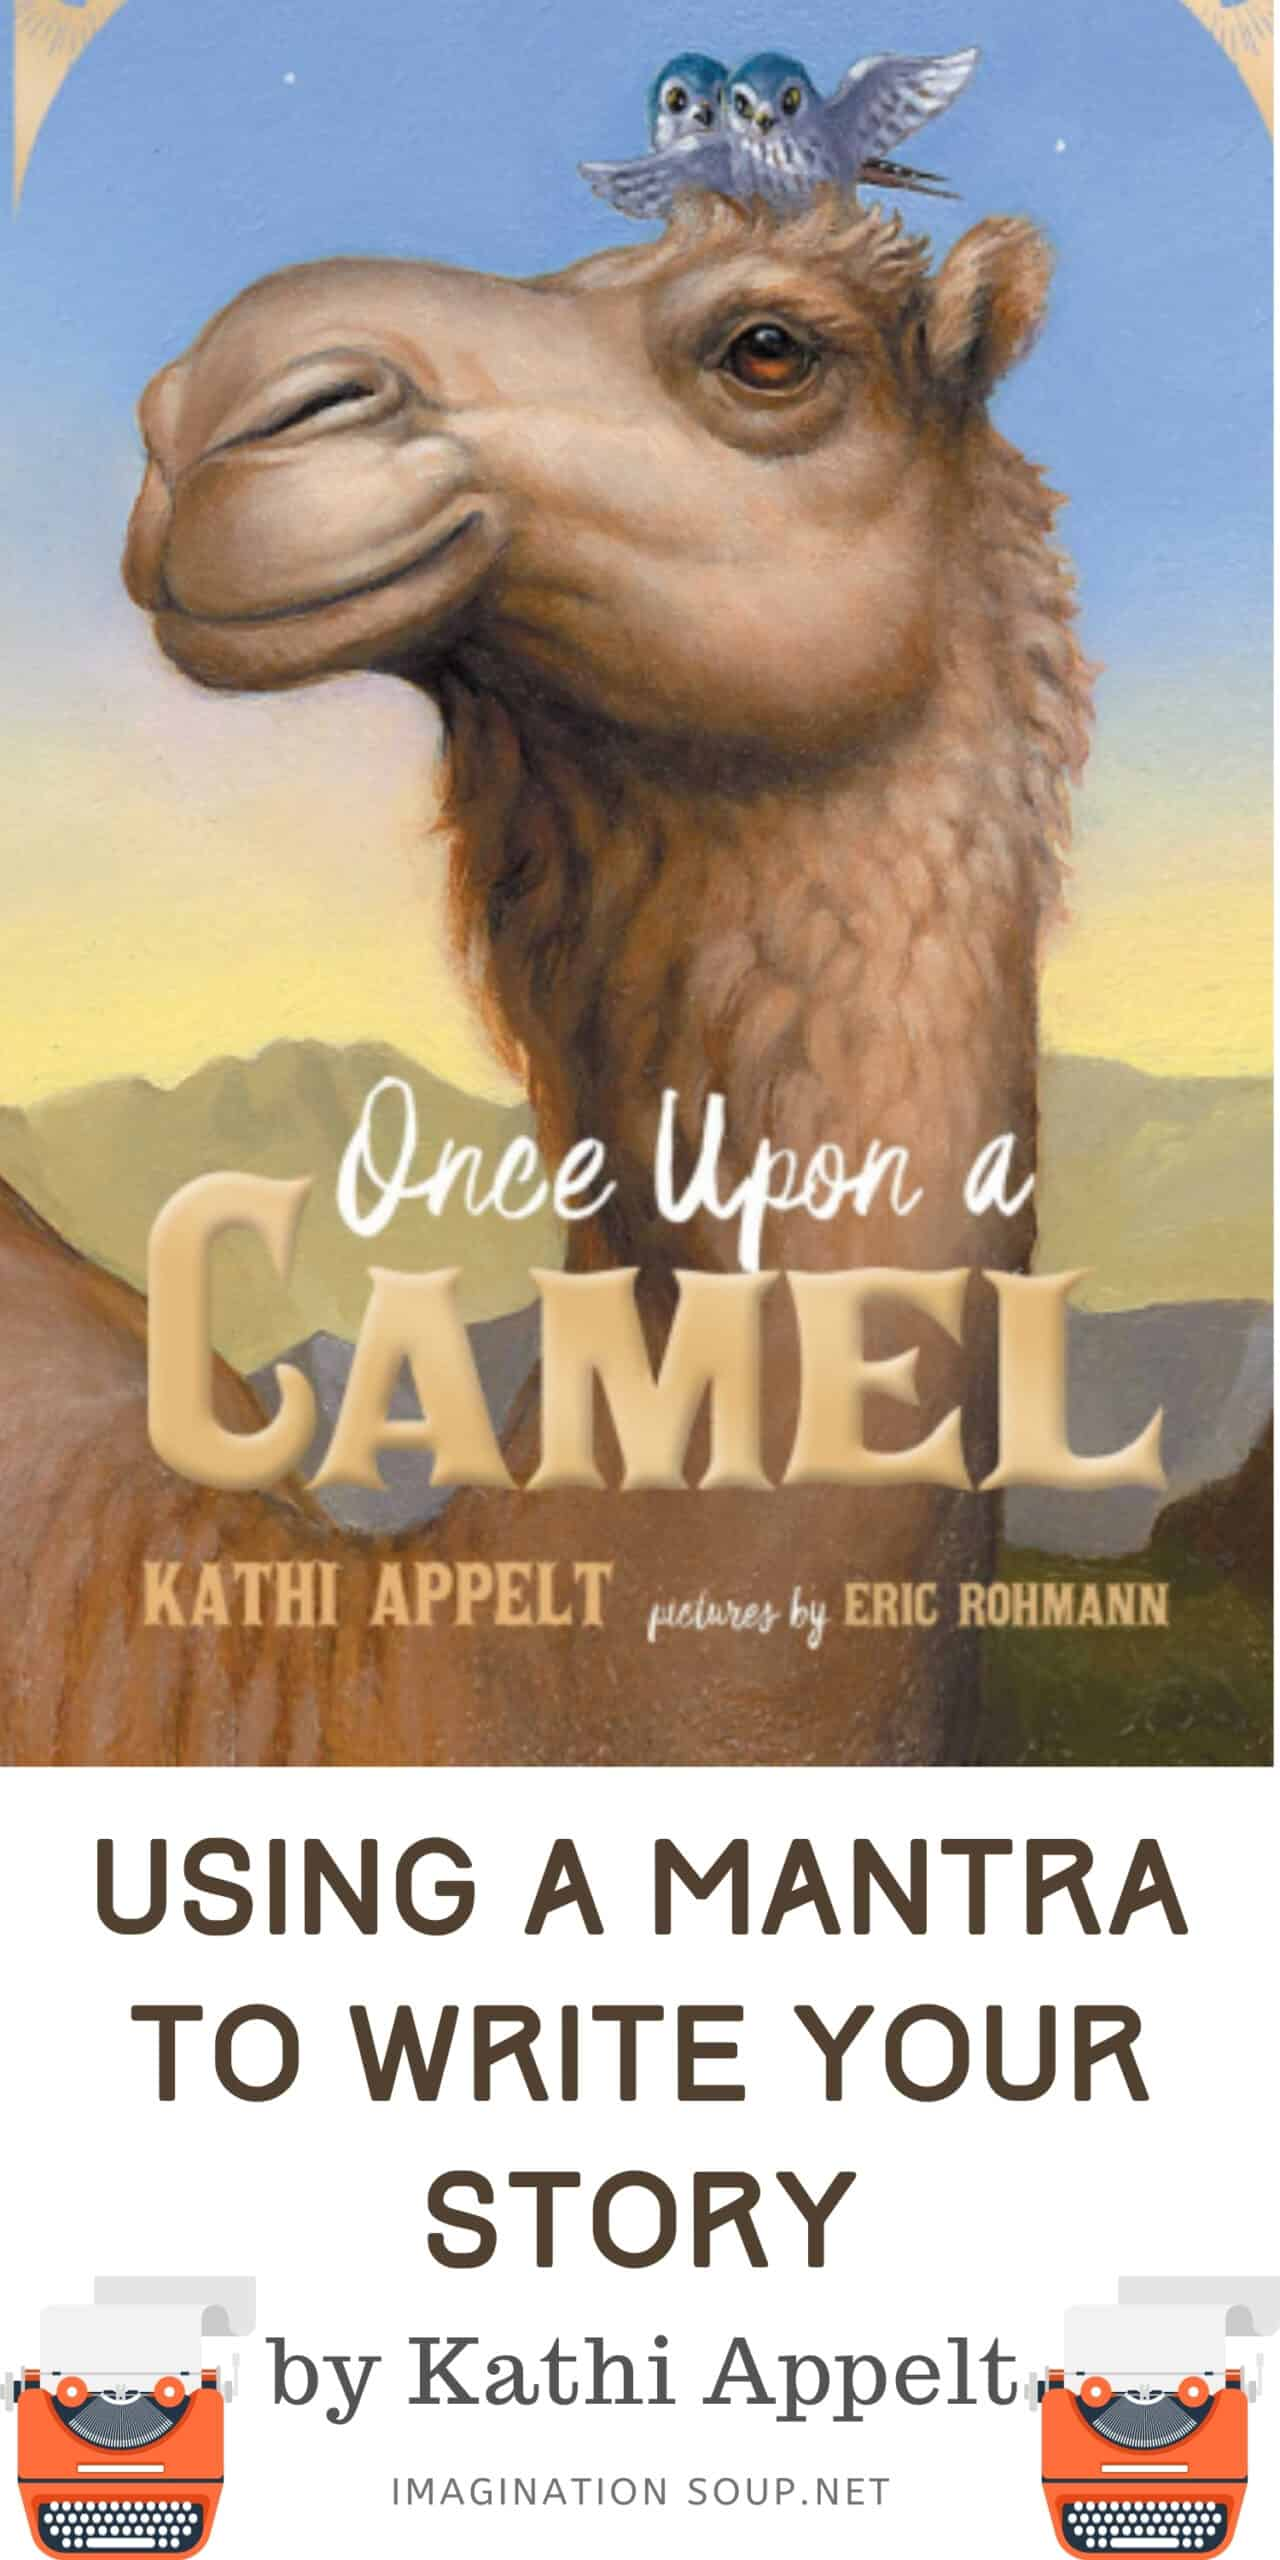 Using a Mantra to Write your Story by Kathi Appelt